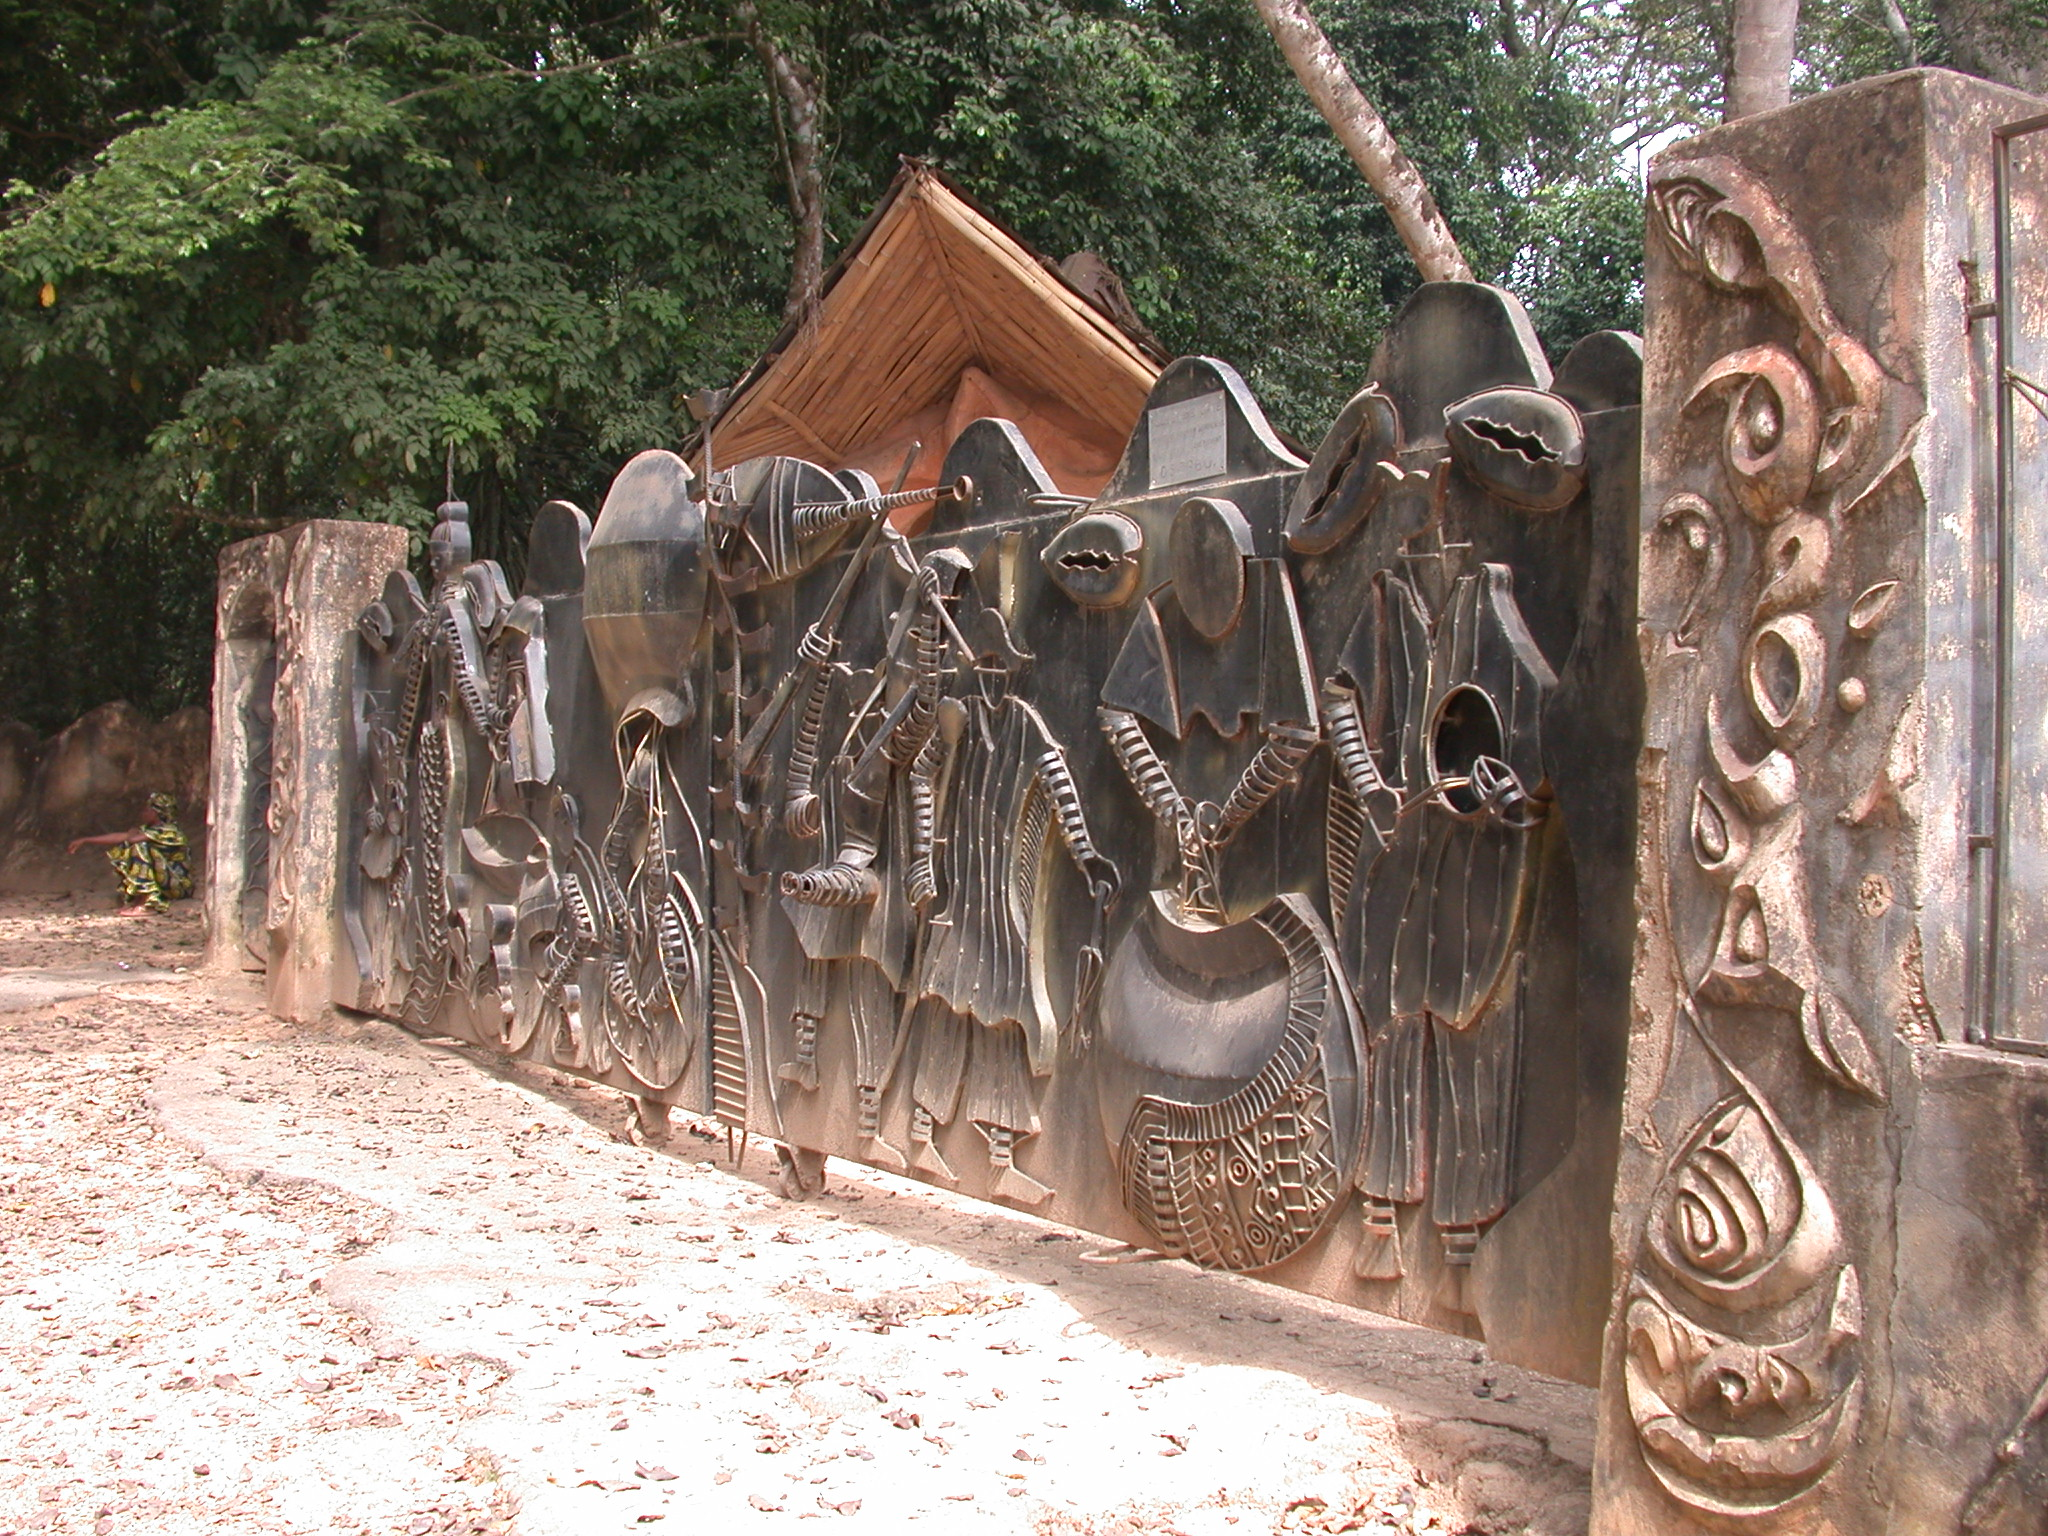 Entrance Gate for Osun Sacred Grove, Oshogbo, Nigeria